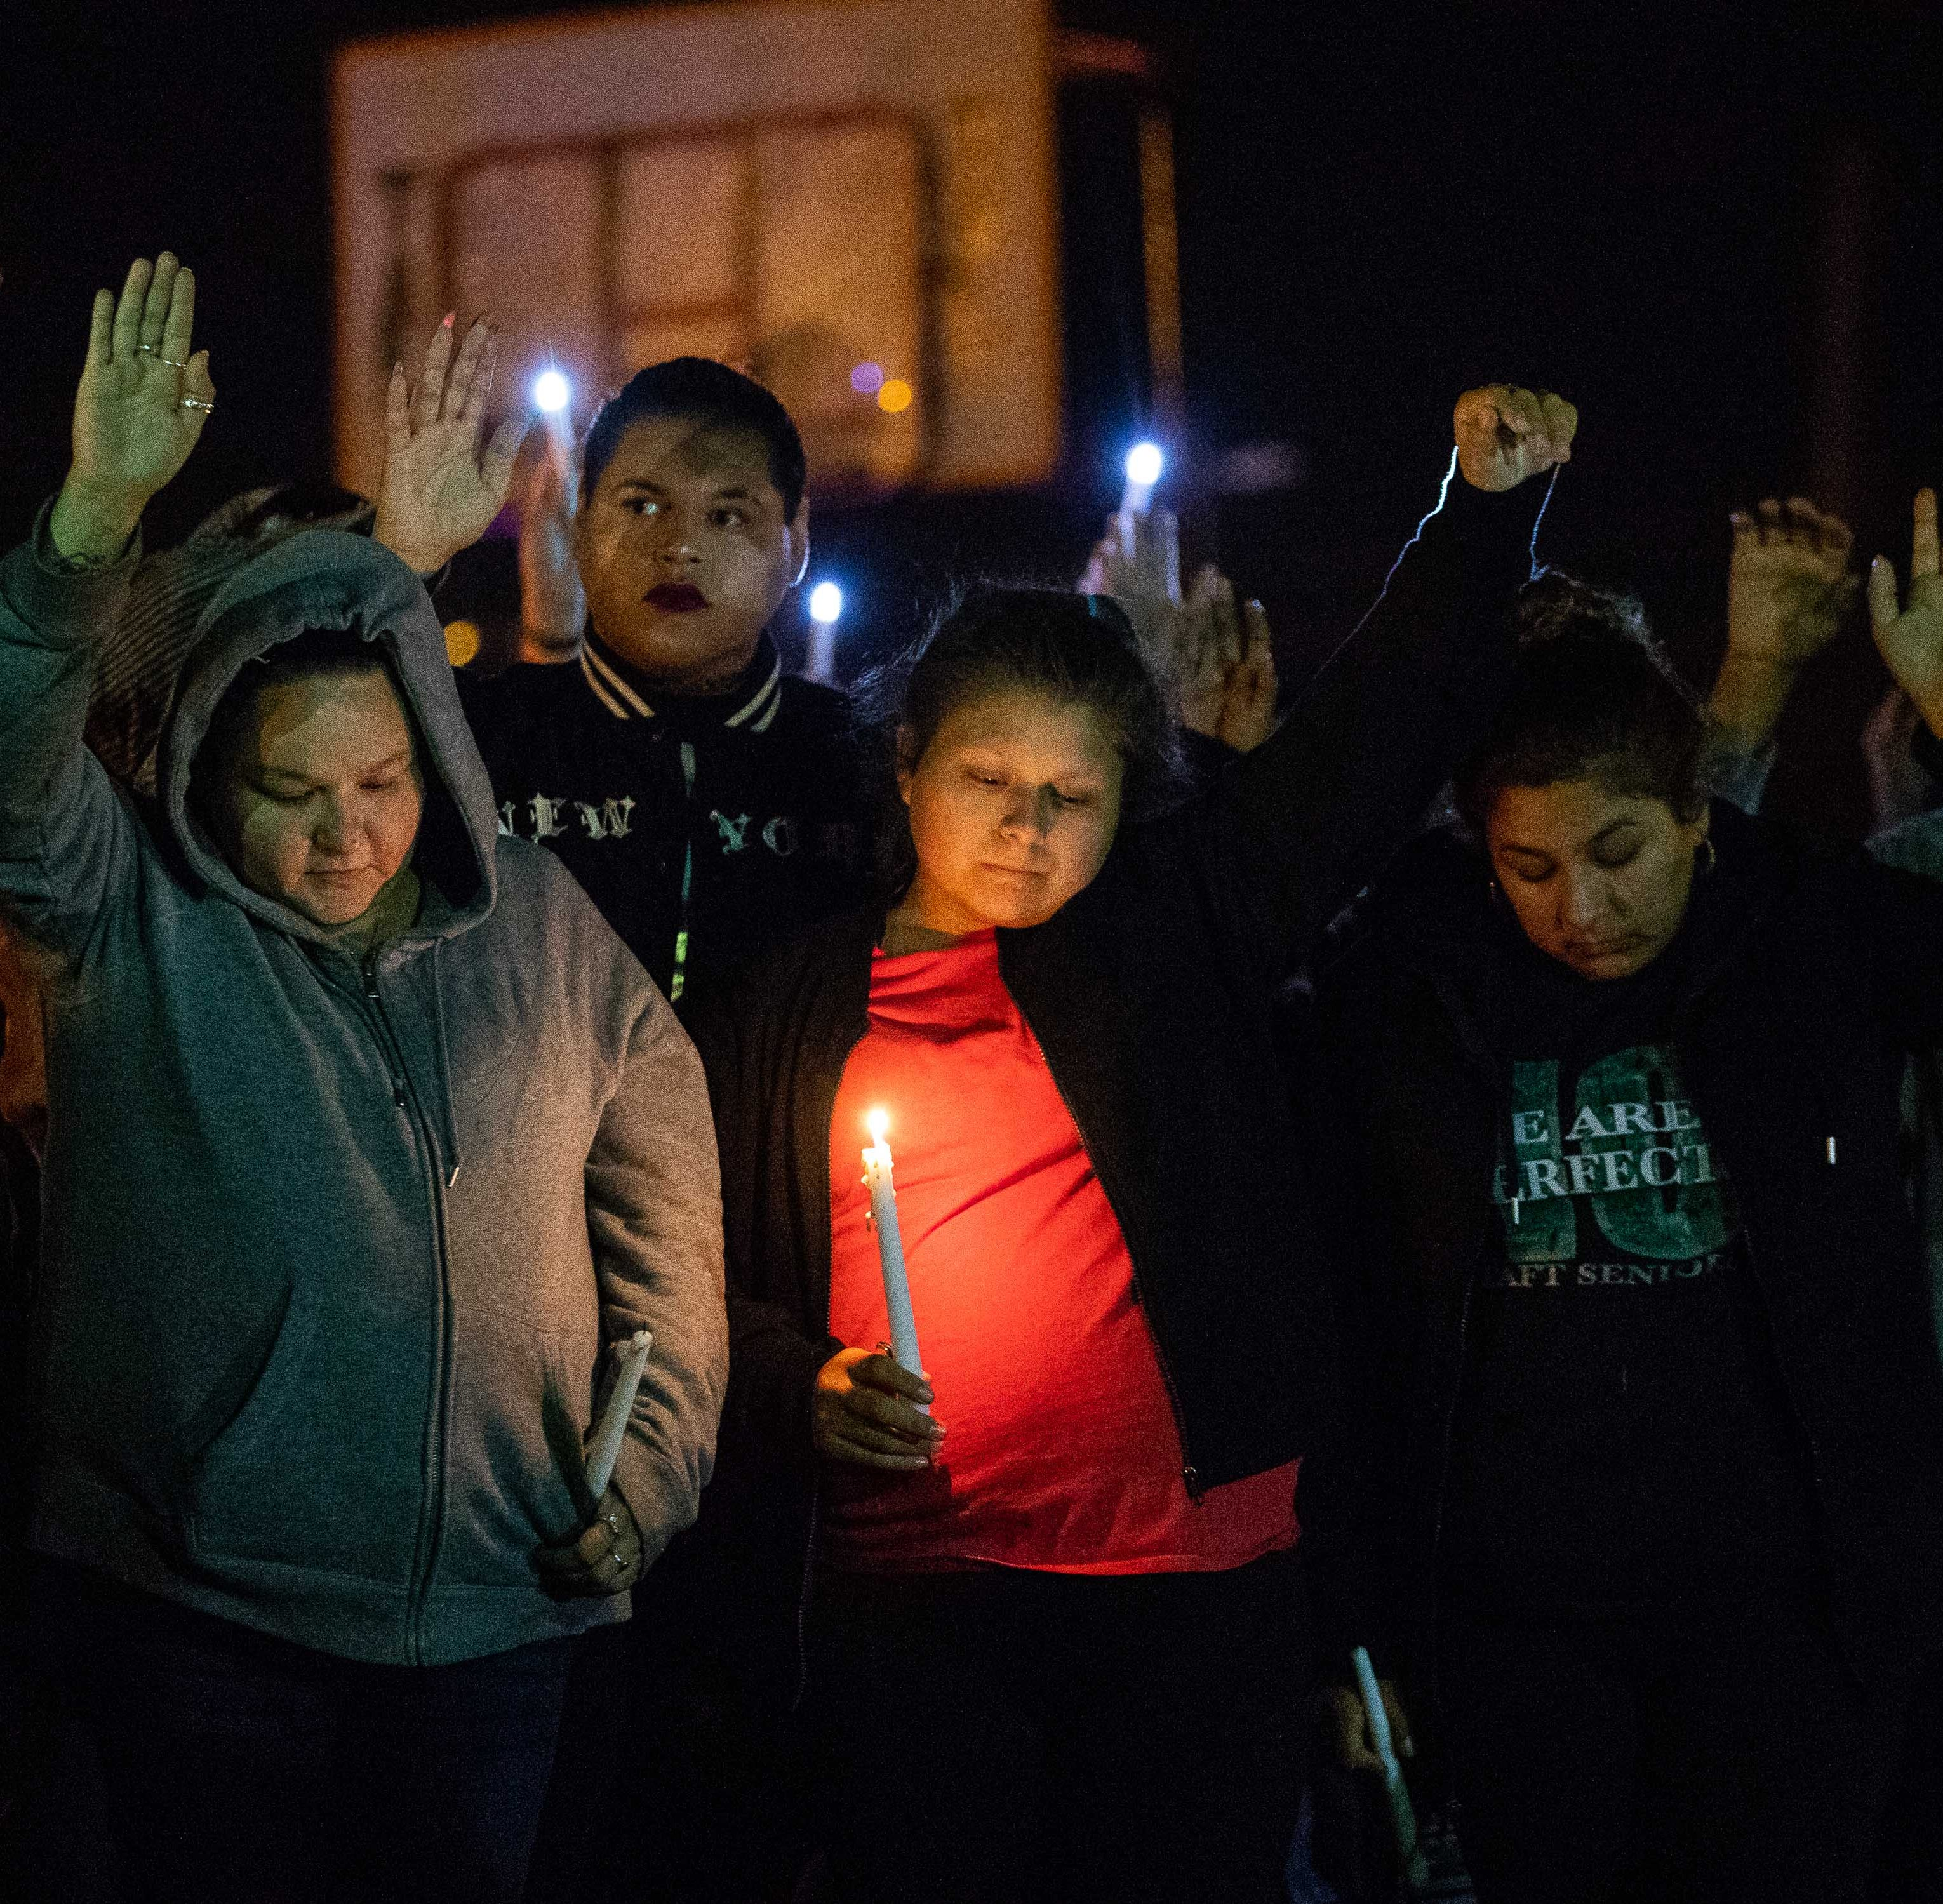 Candid light vigil held in Taft for the victims Saturdays shooting that killed 4 men